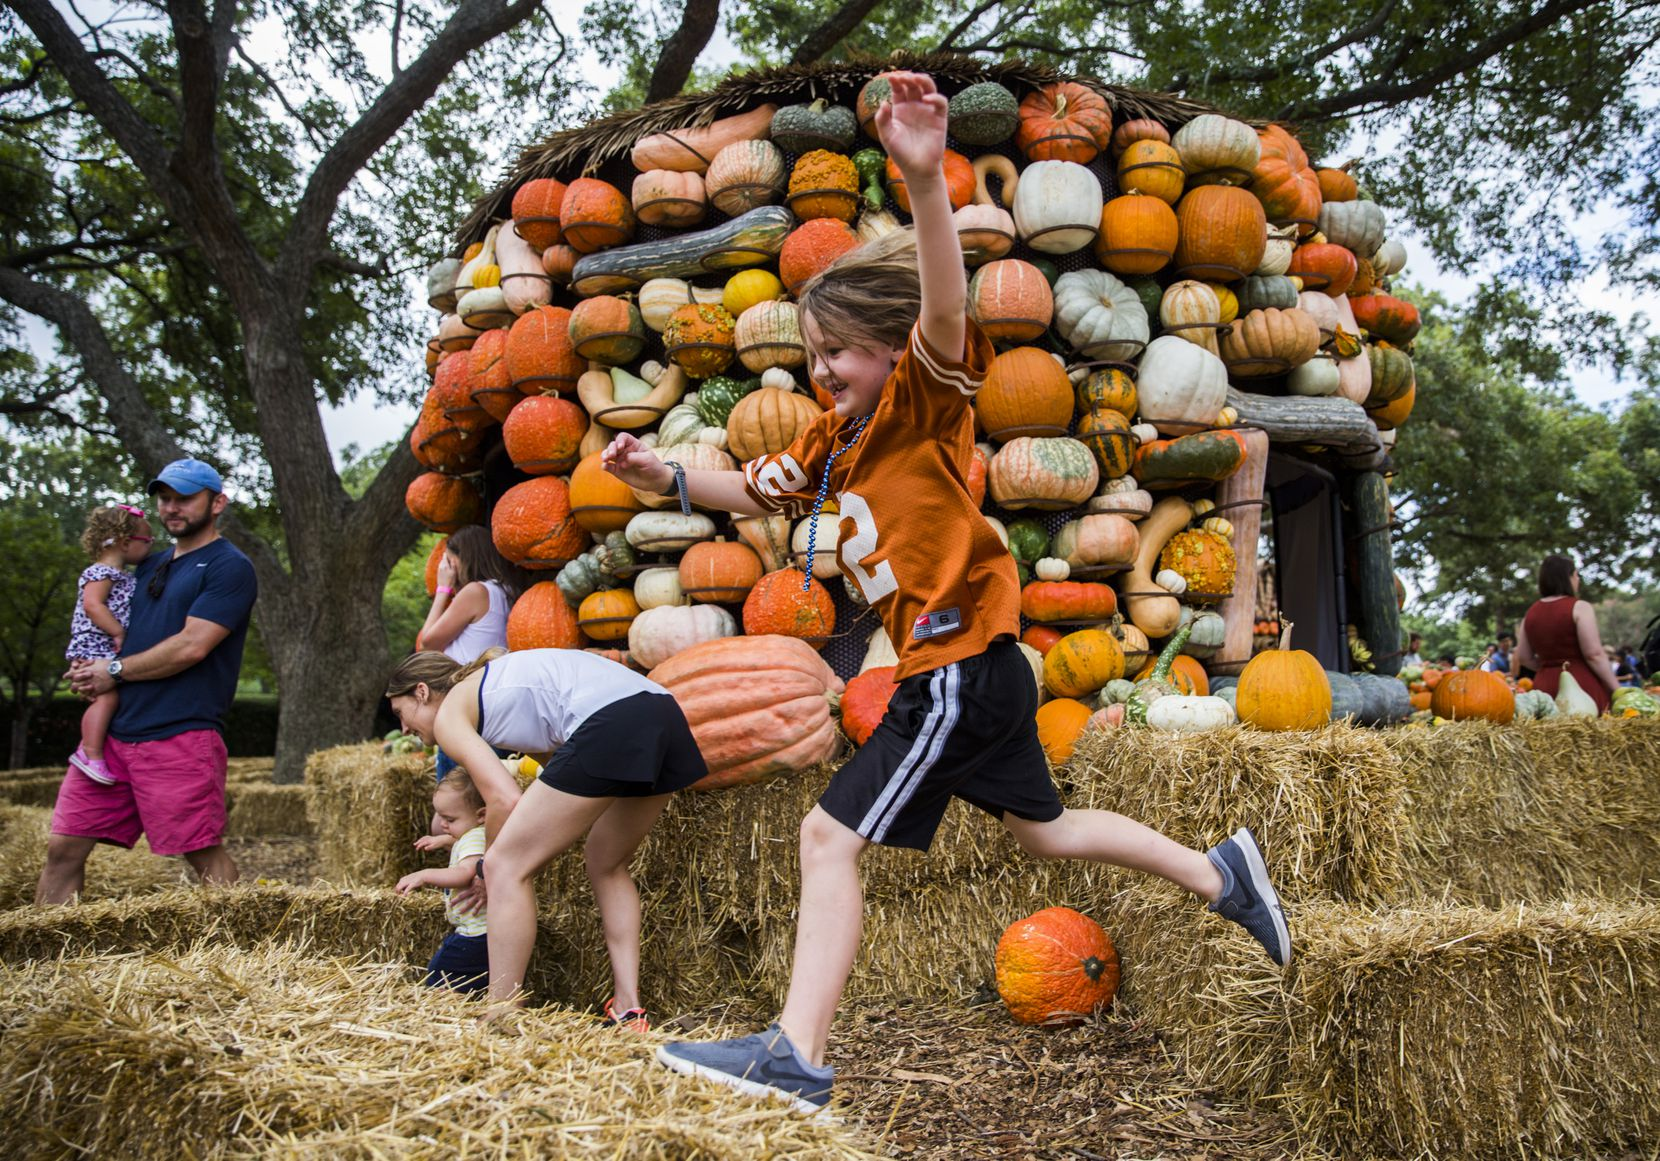 Isaac Wood jumps through the hay maze in the pumpkin village at the Dallas Arboretum's Autumn at the Arboretum in 2019. The 2021 festival will be held Sept. 18-Oct. 31.